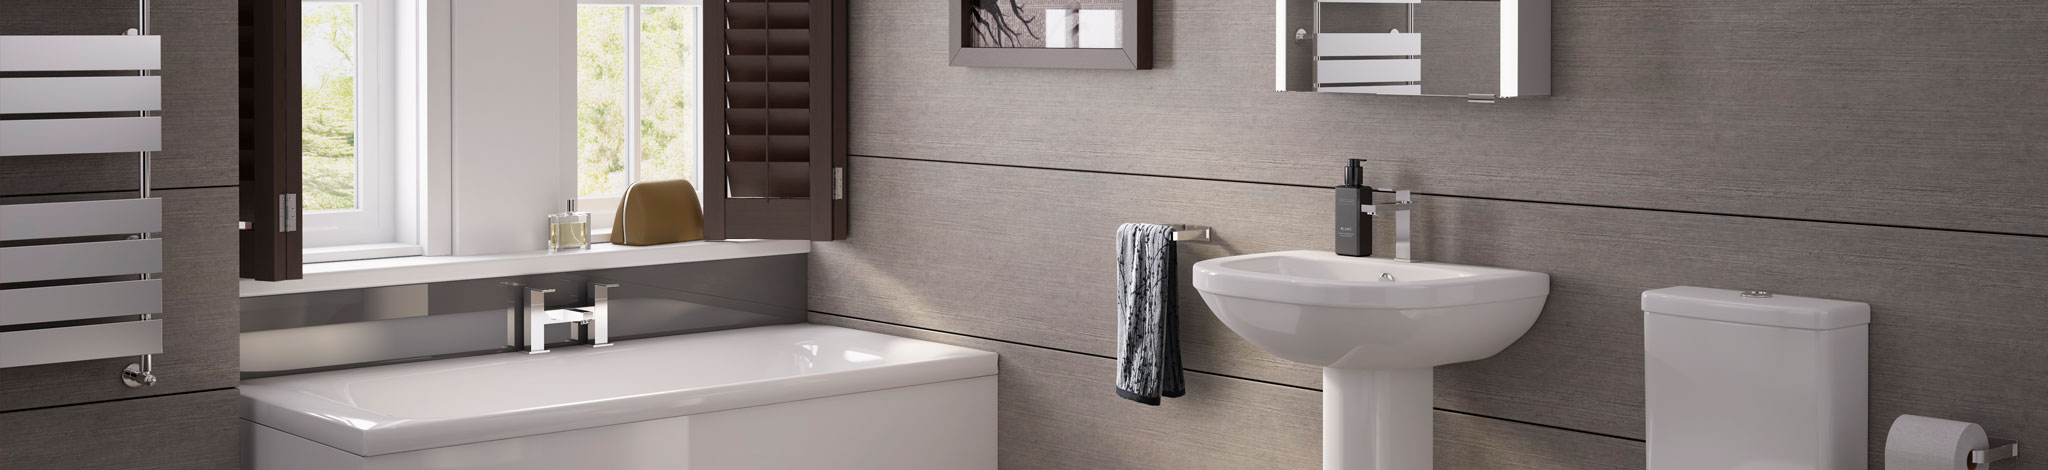 Pura bathrooms at Taps and Tubs